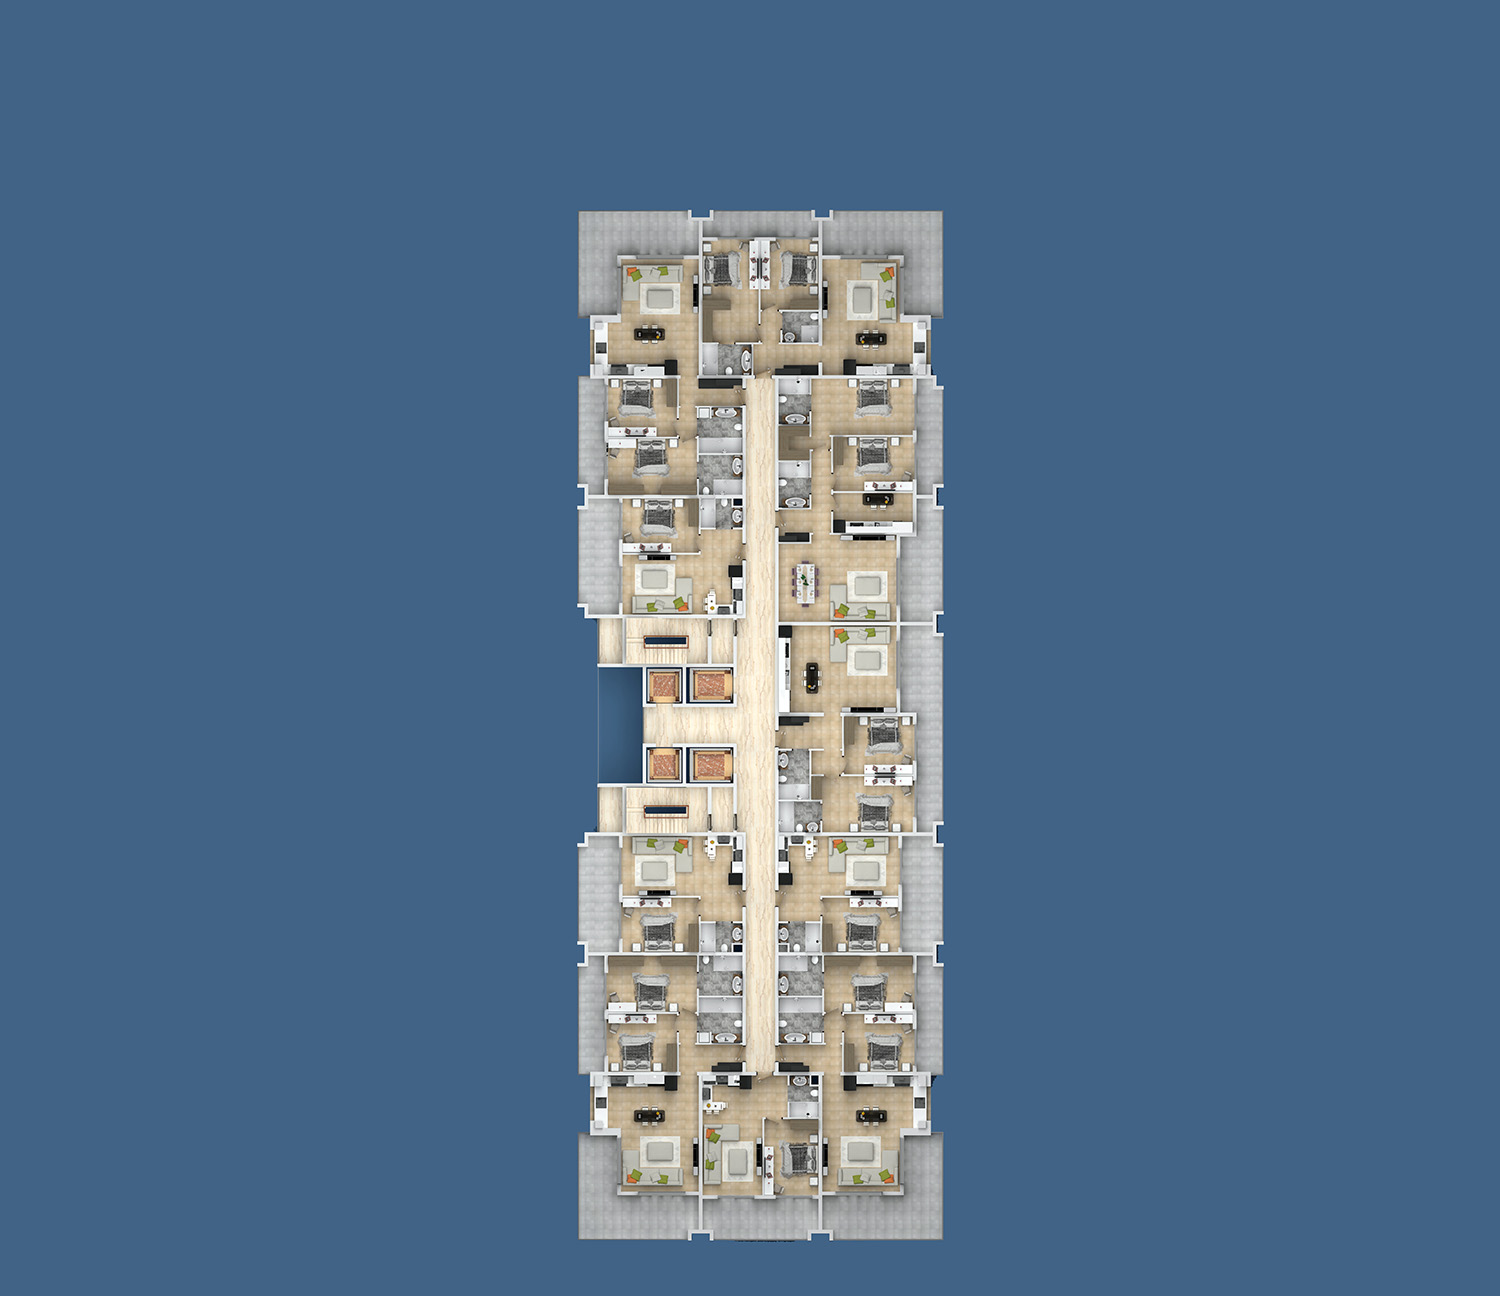 Floor plans of apartments 11 floor «B» Yekta Kingdom Premium